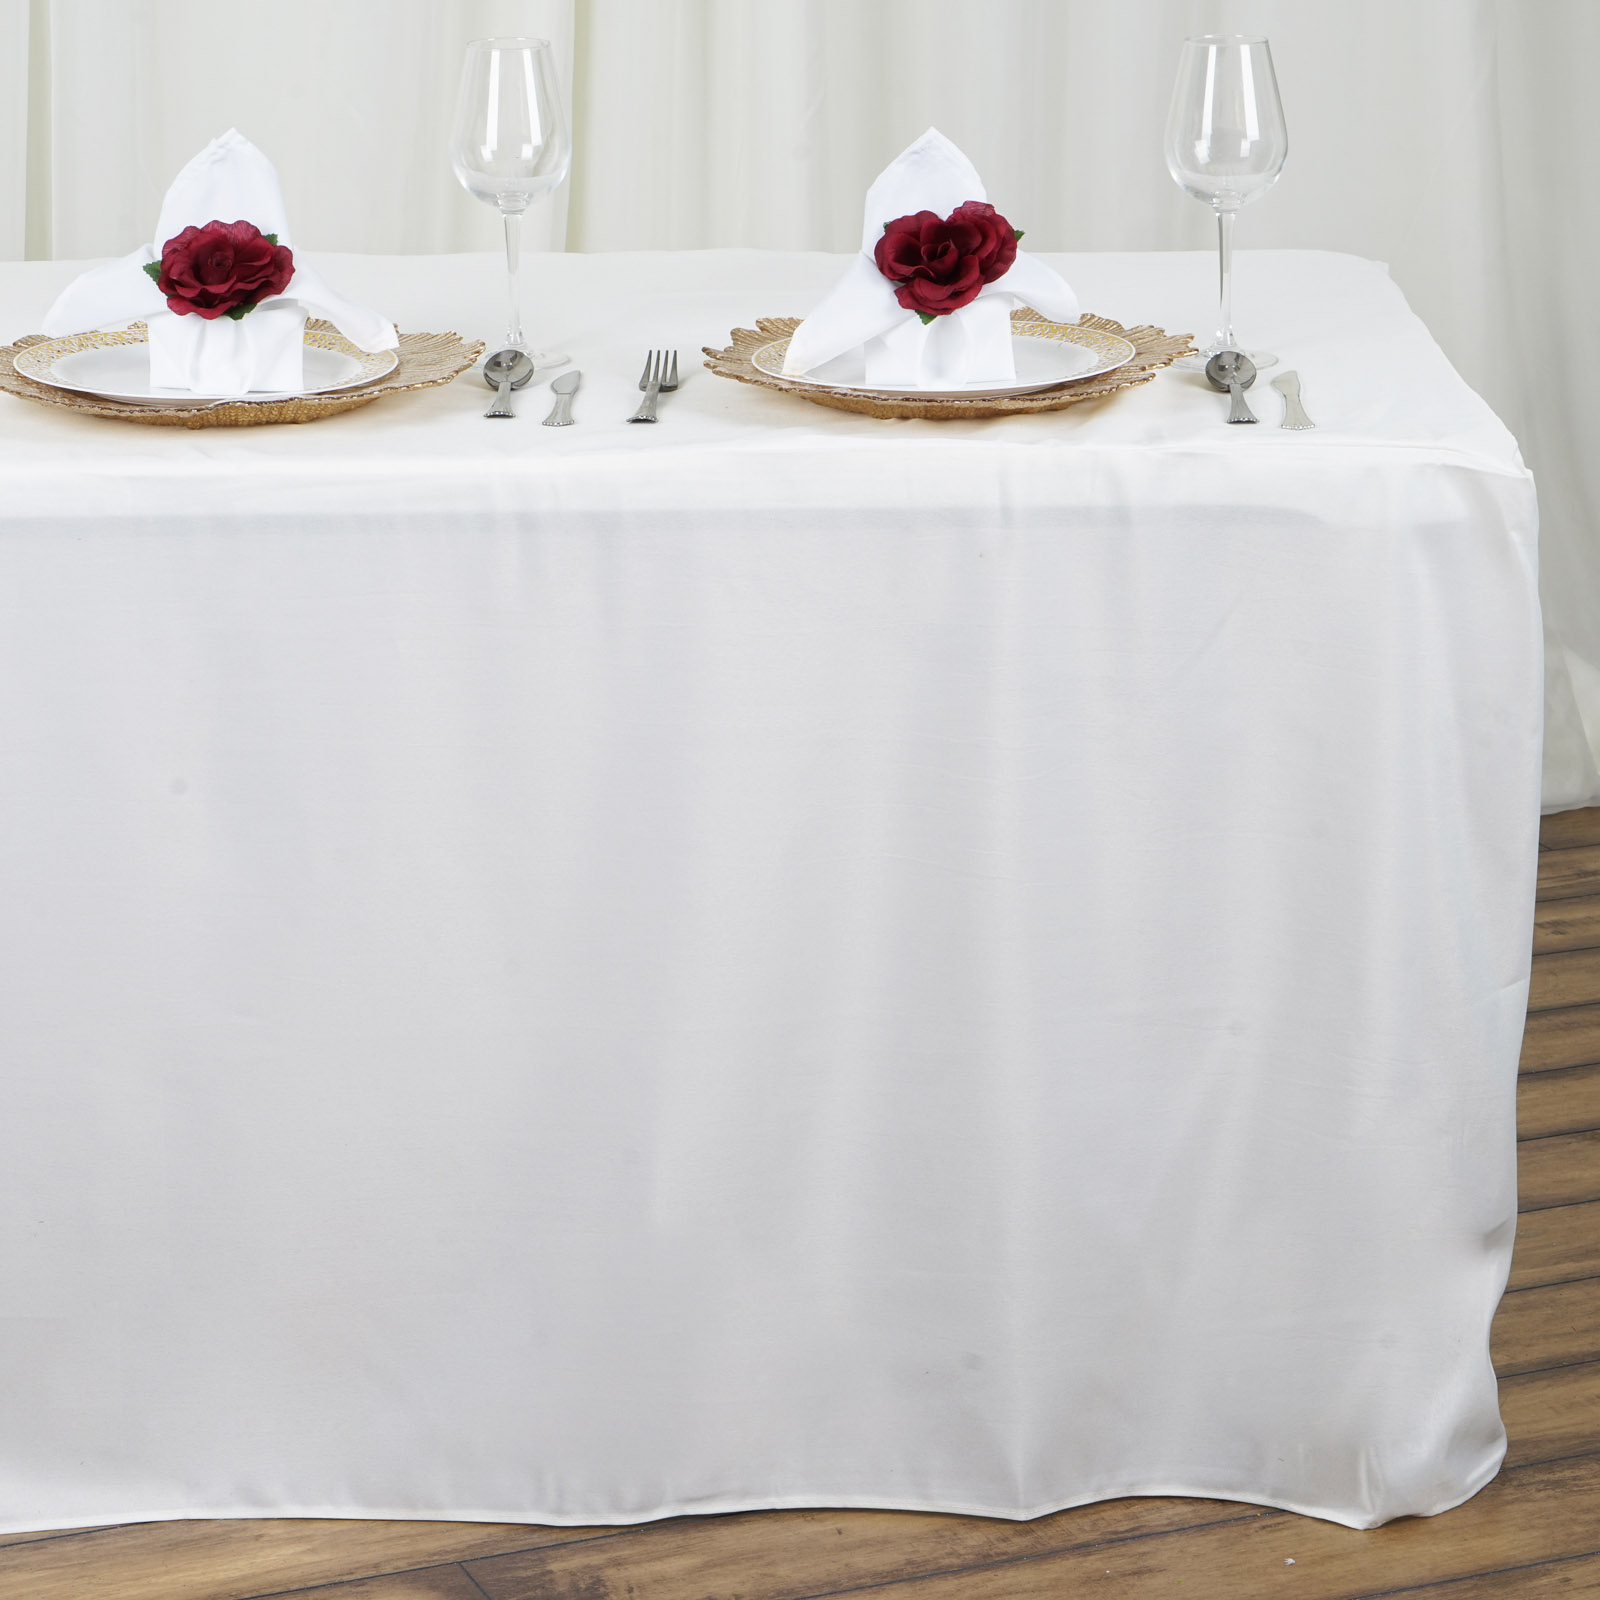 8 feet FITTED Polyester Banquet Tablecloth Wedding Table  : tabfit8ivr01 from www.ebay.com size 1600 x 1600 jpeg 229kB